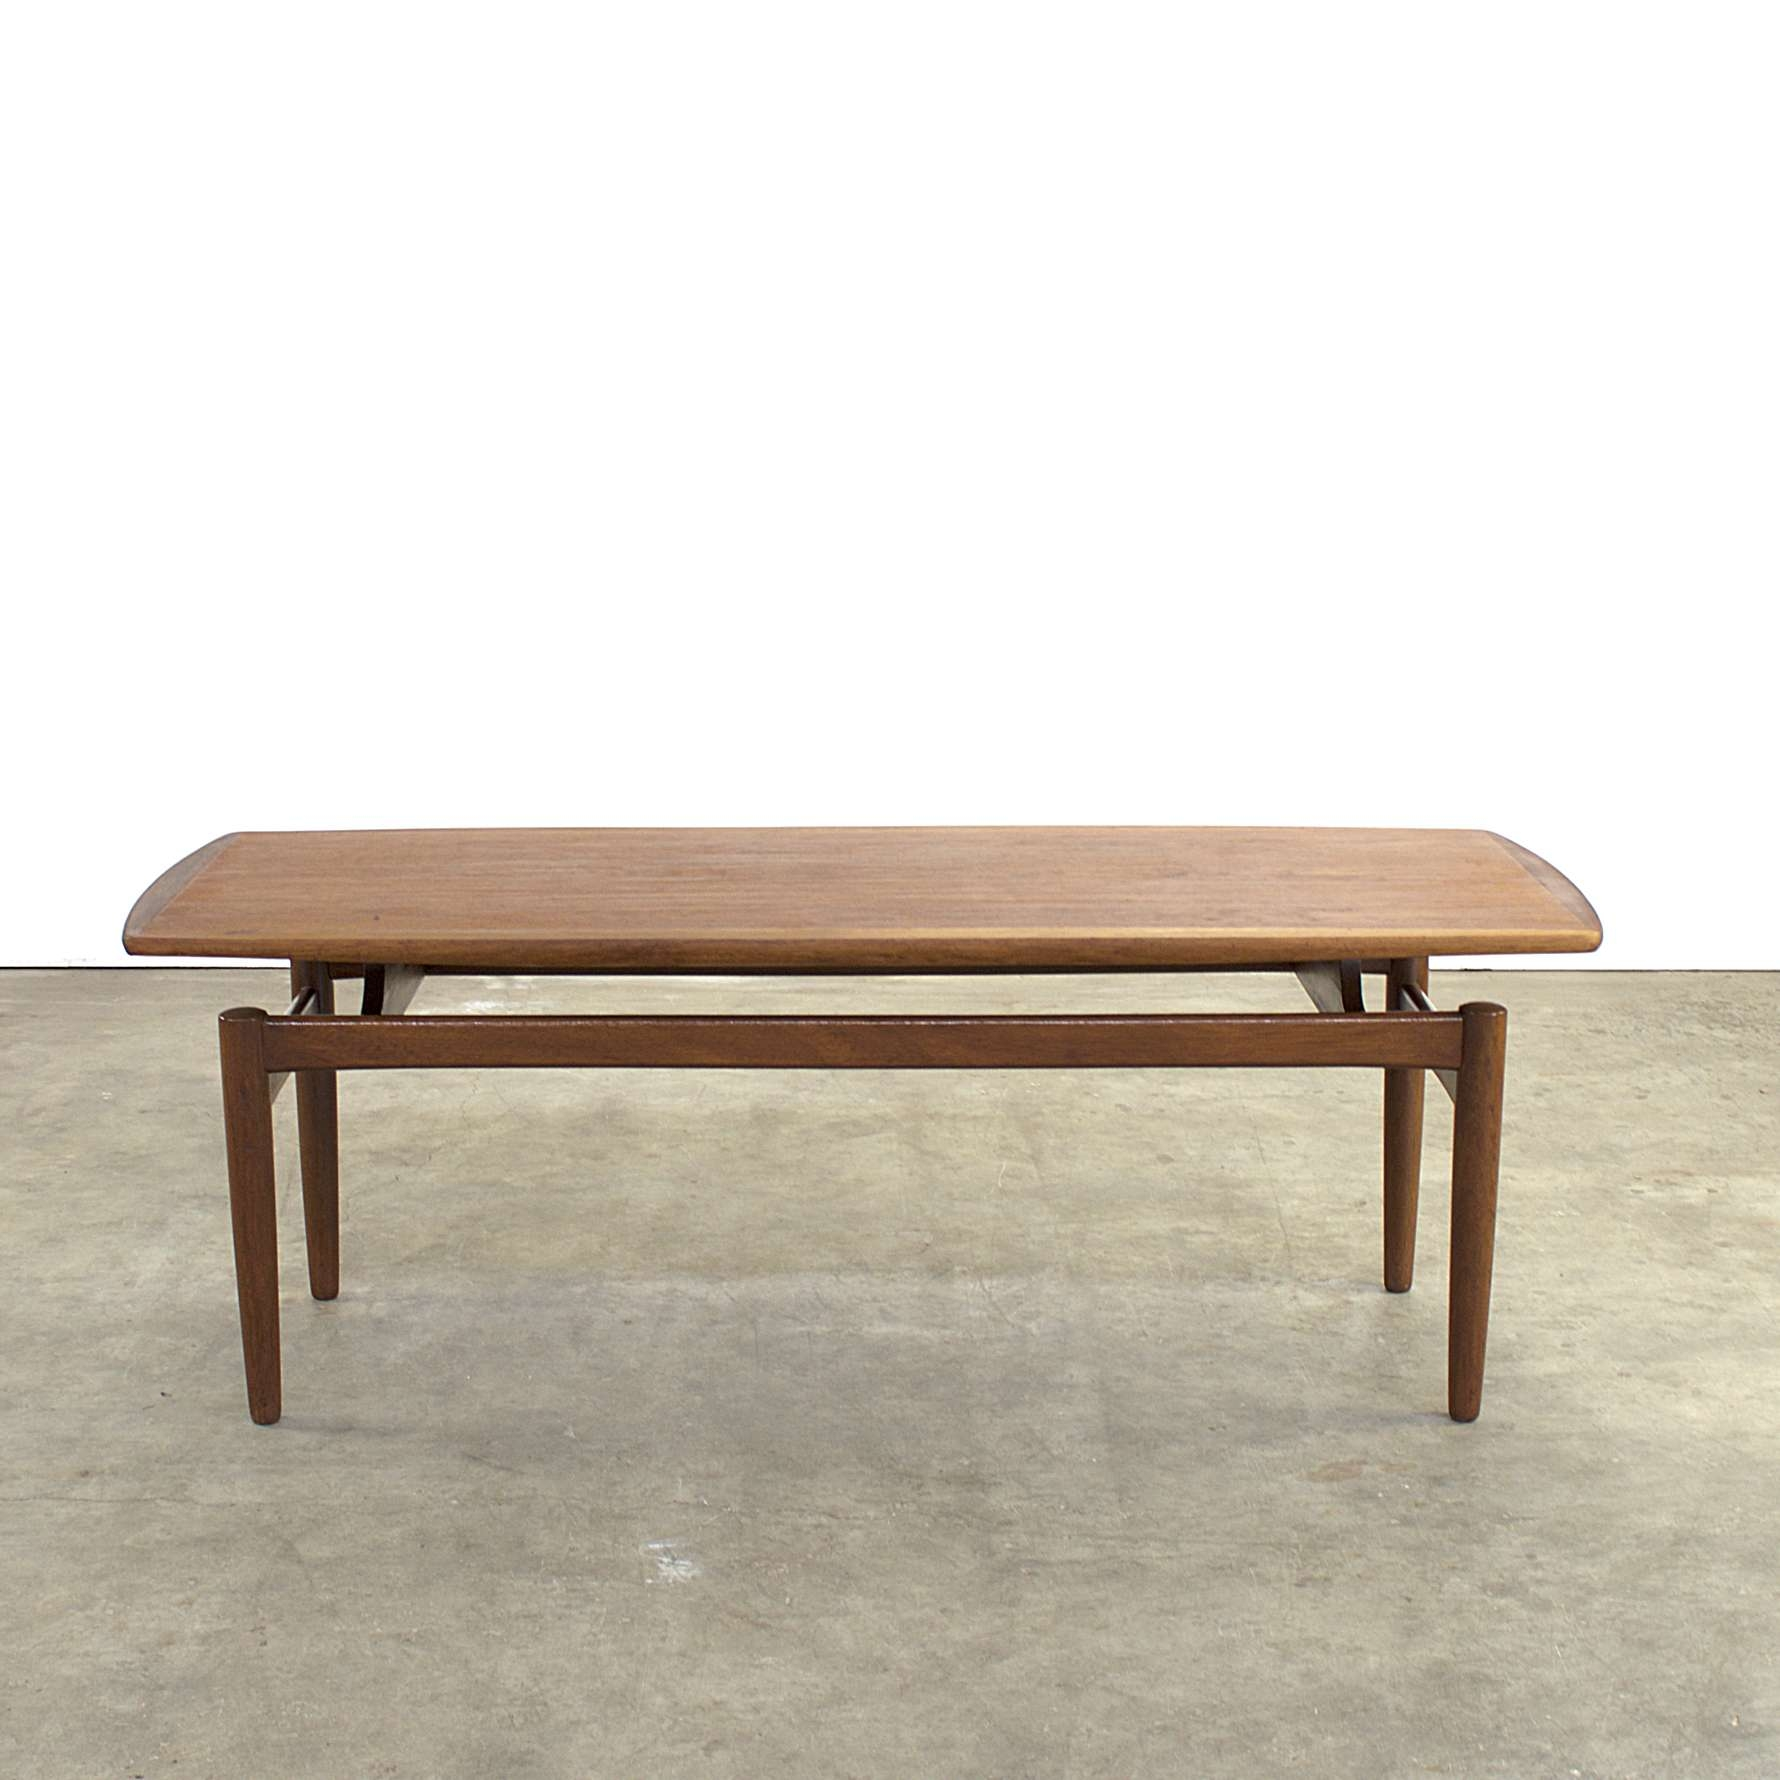 60S Coffee Table Scandinavian Design Barbmama, Scandinavian Throughout Recent Sixties Coffee Tables (Gallery 7 of 20)